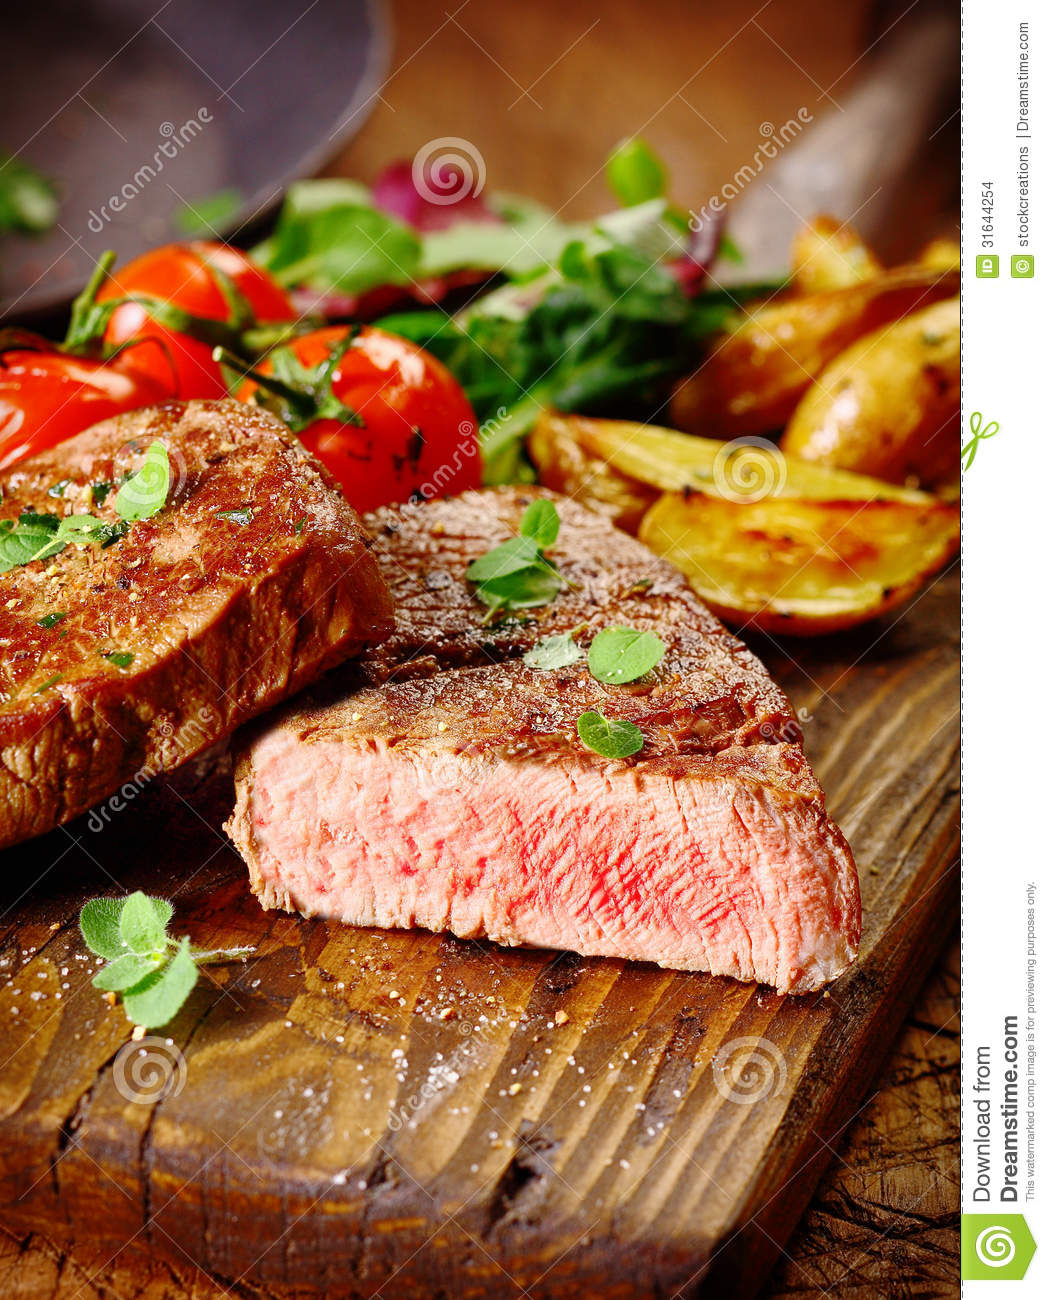 how to cook lean steak